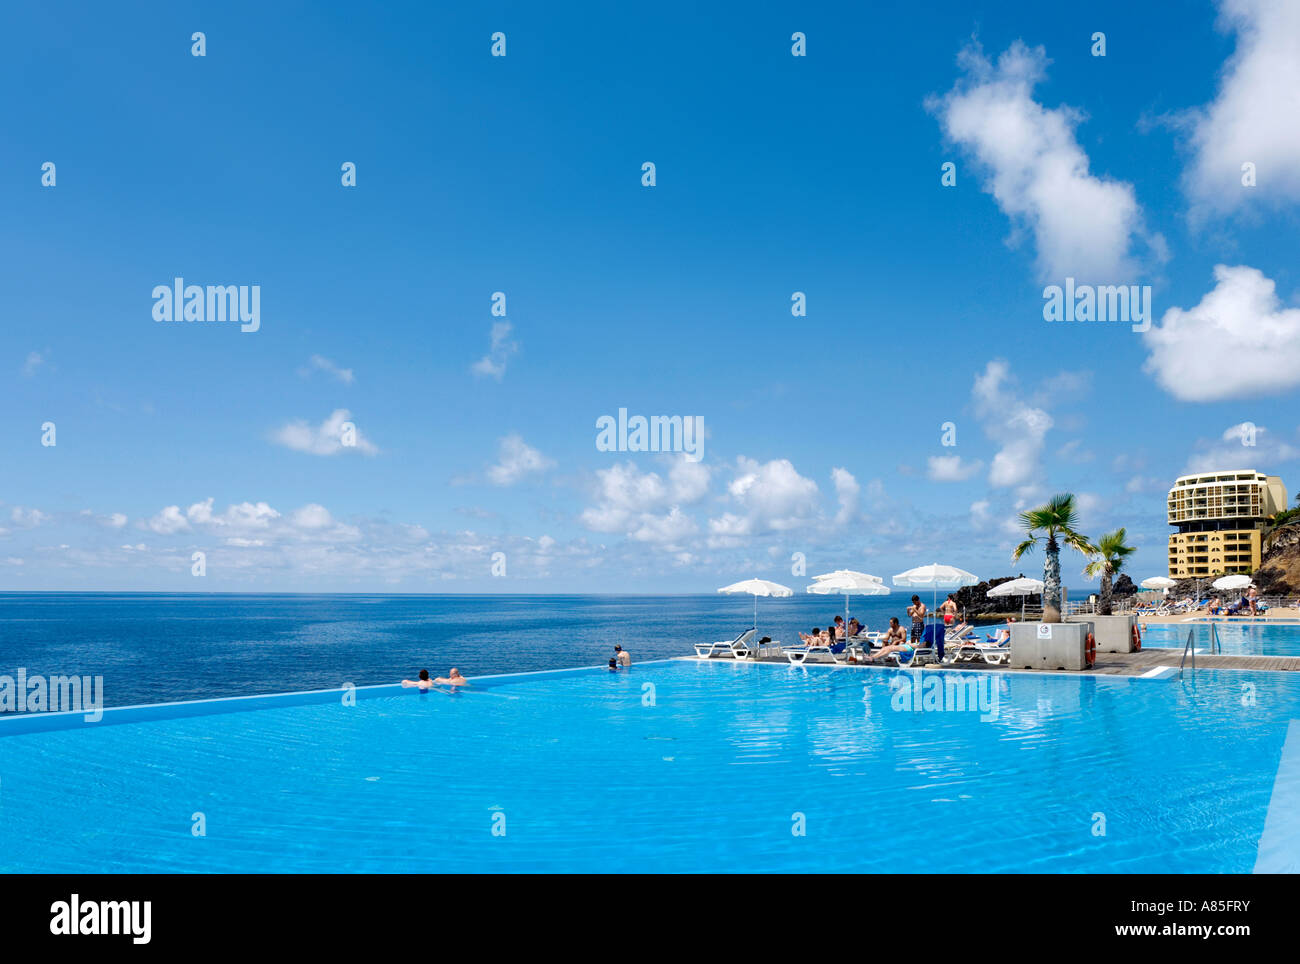 Infinity pool at the Crowne Plaza Resort, Funchal, Madeira, Portugal - Stock Image